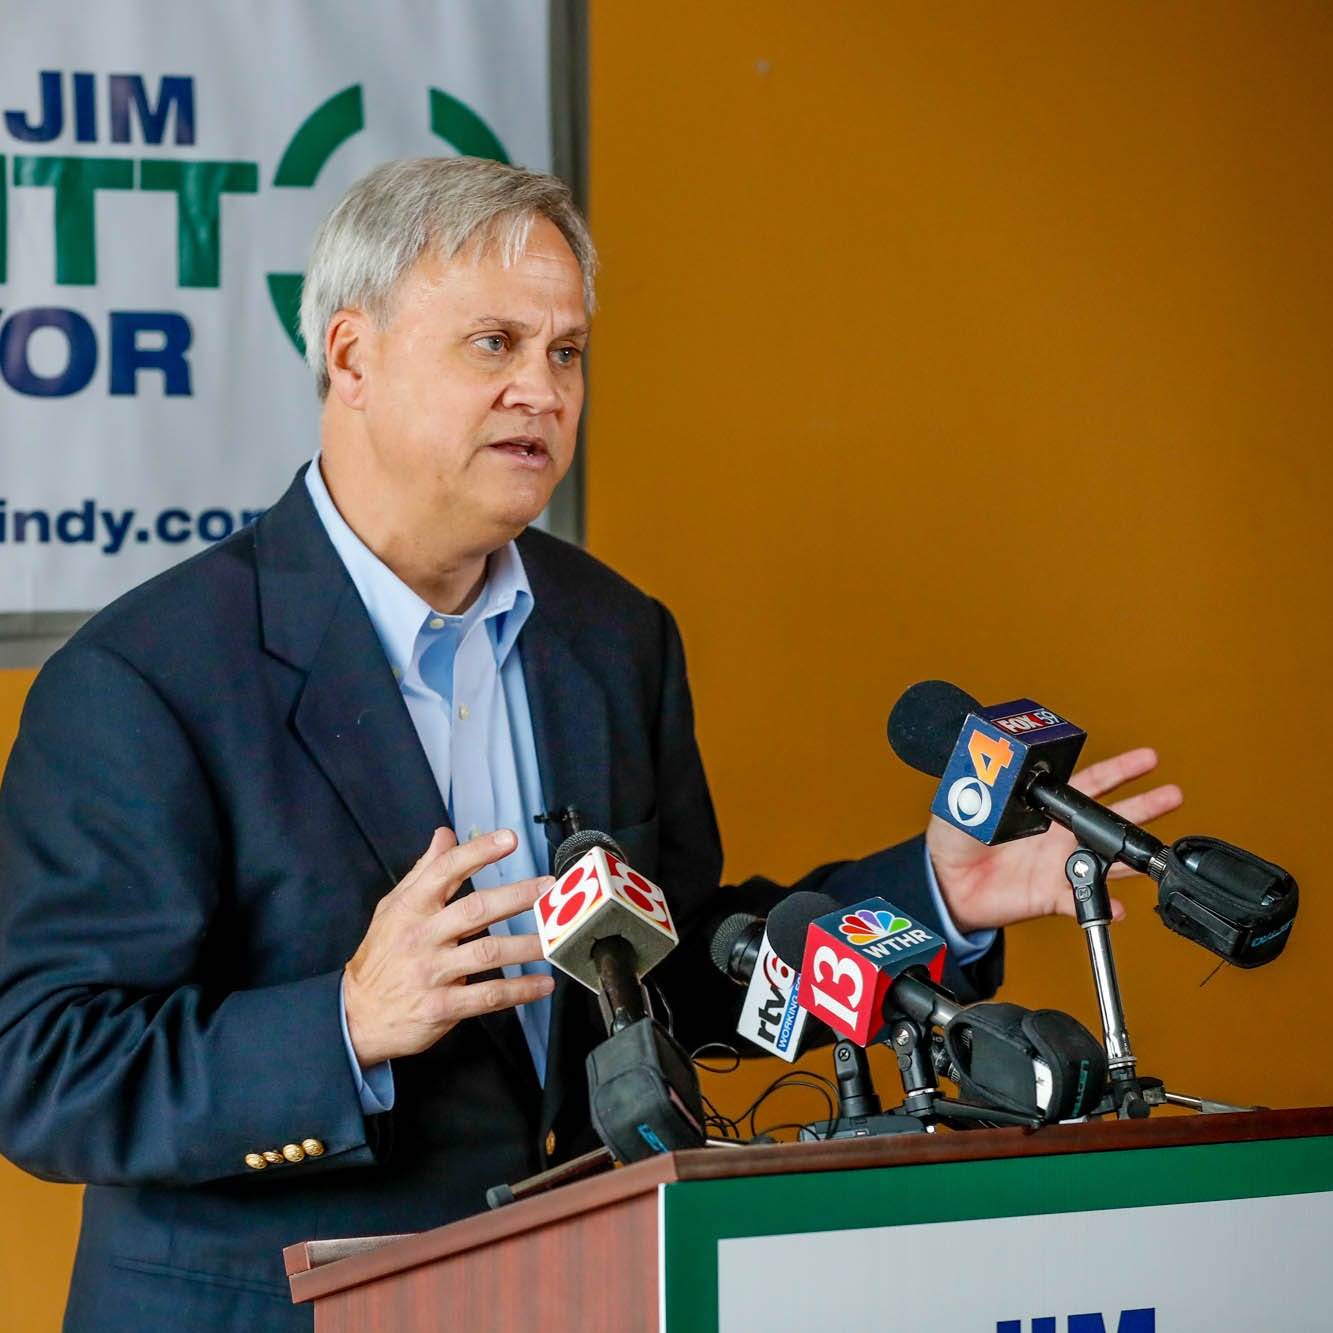 Jim Merritt's fellow Republicans criticize 'tacky, distasteful' campaign on potholes